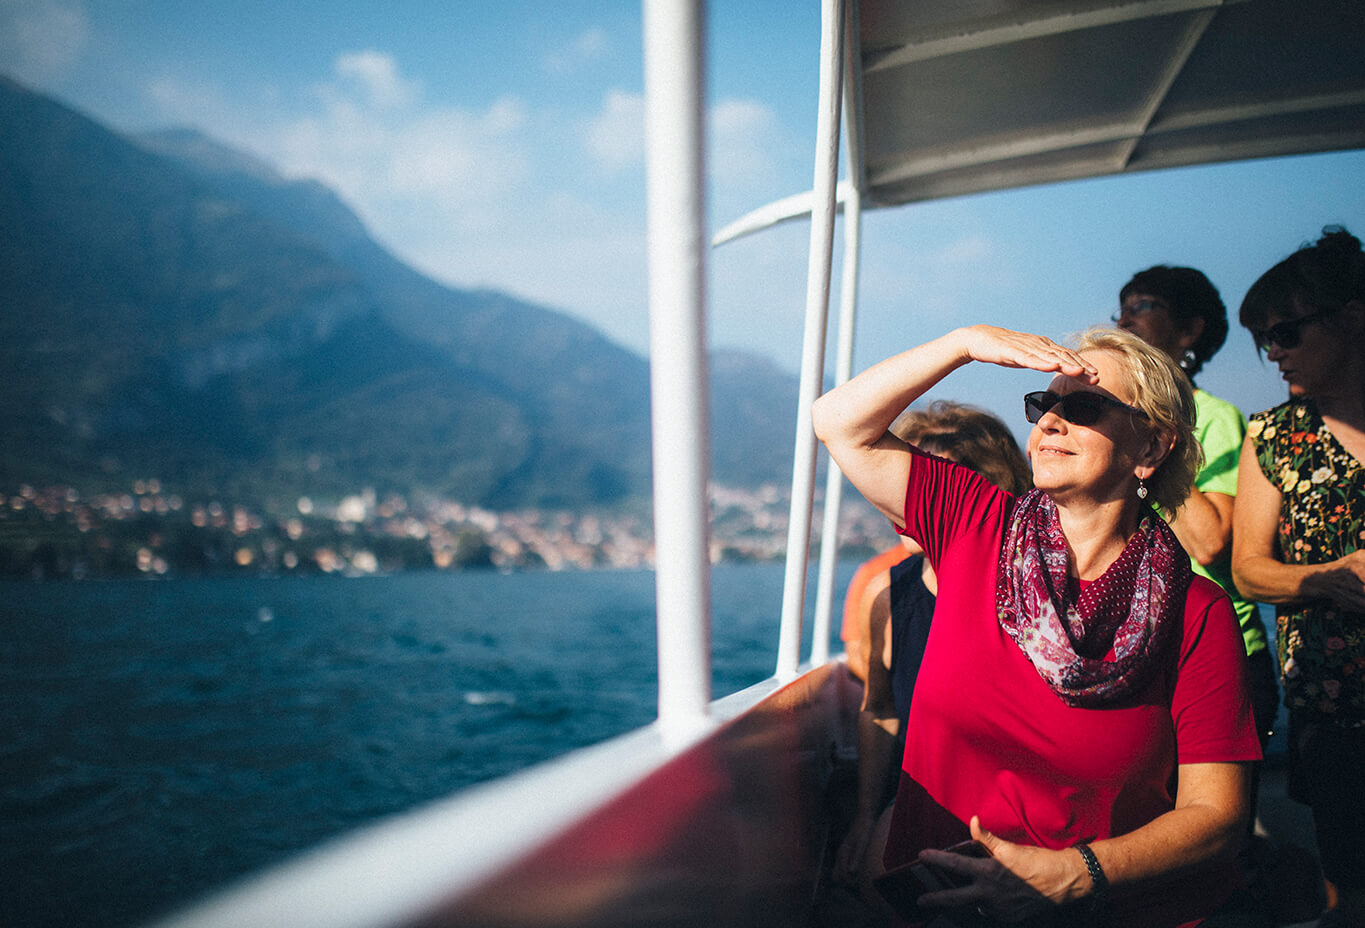 woman blocking the sun with her hand while riding on a boat